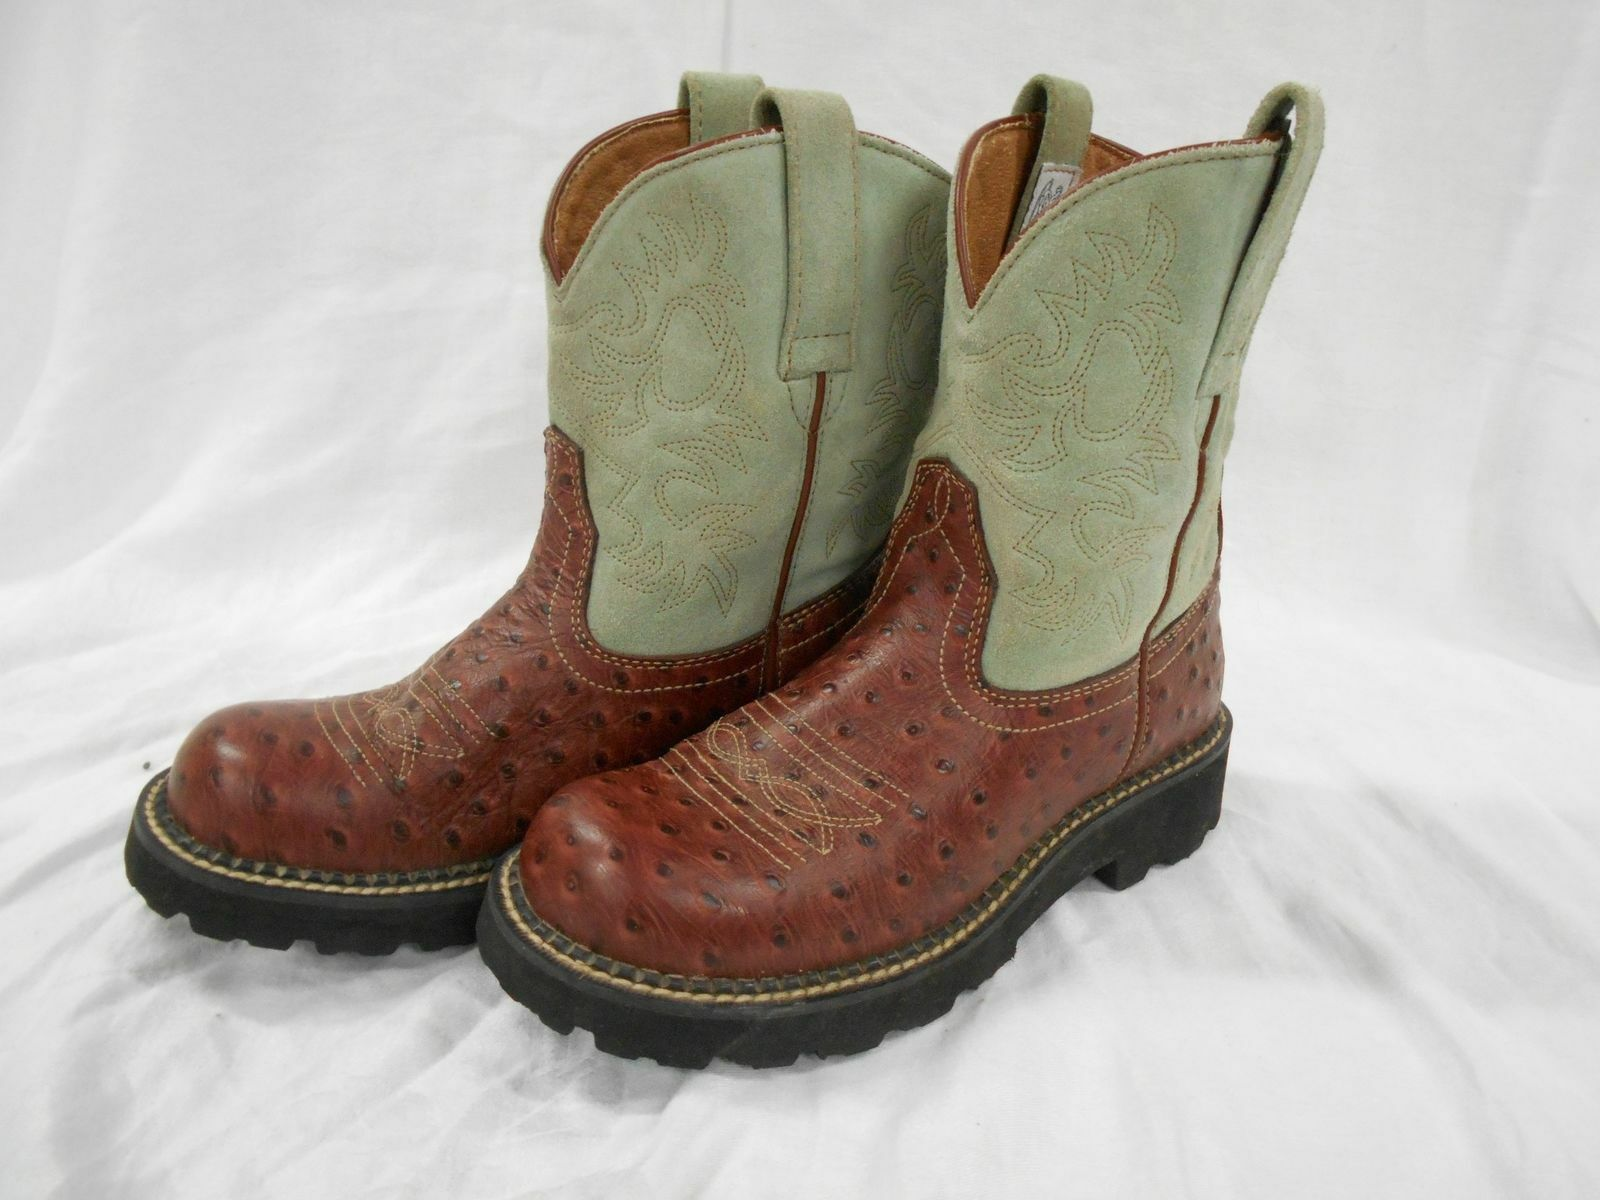 FATBABY ARIAT OSTRICH PRINT women TEAL GREEN SUEDE leather Cowboy Boots SZ 7.5 B